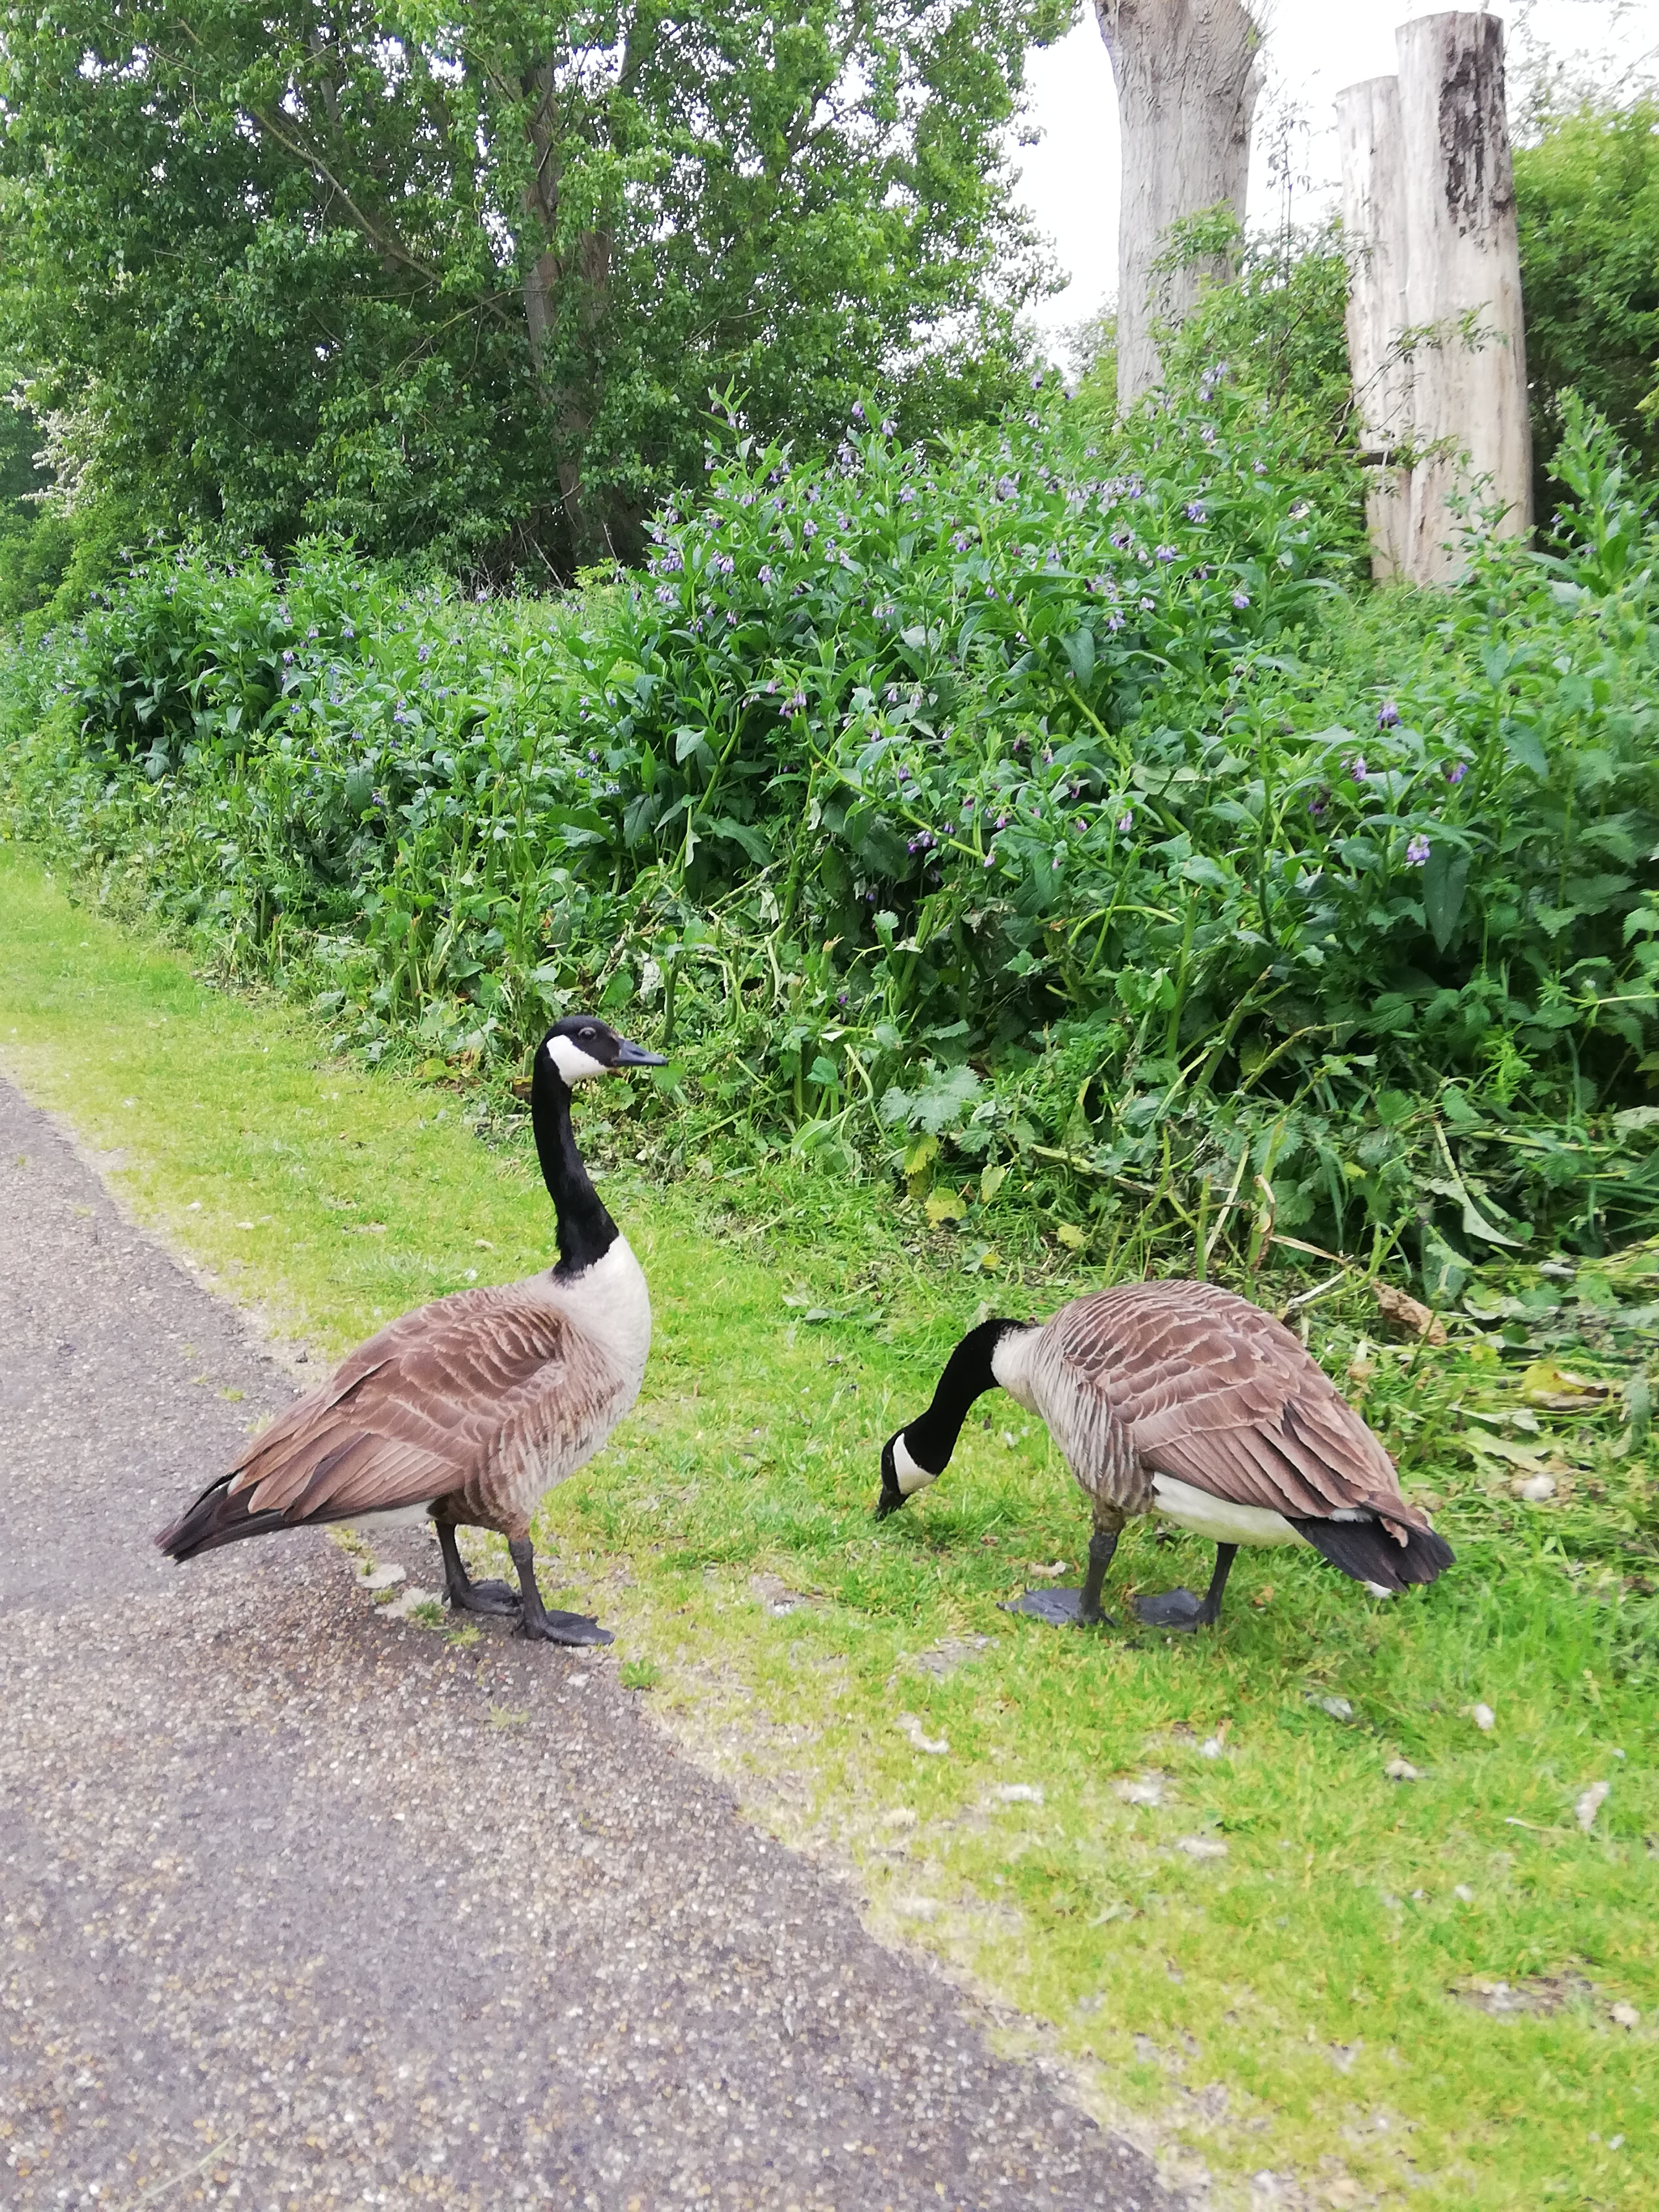 Two Geese stood on the grass of the road side